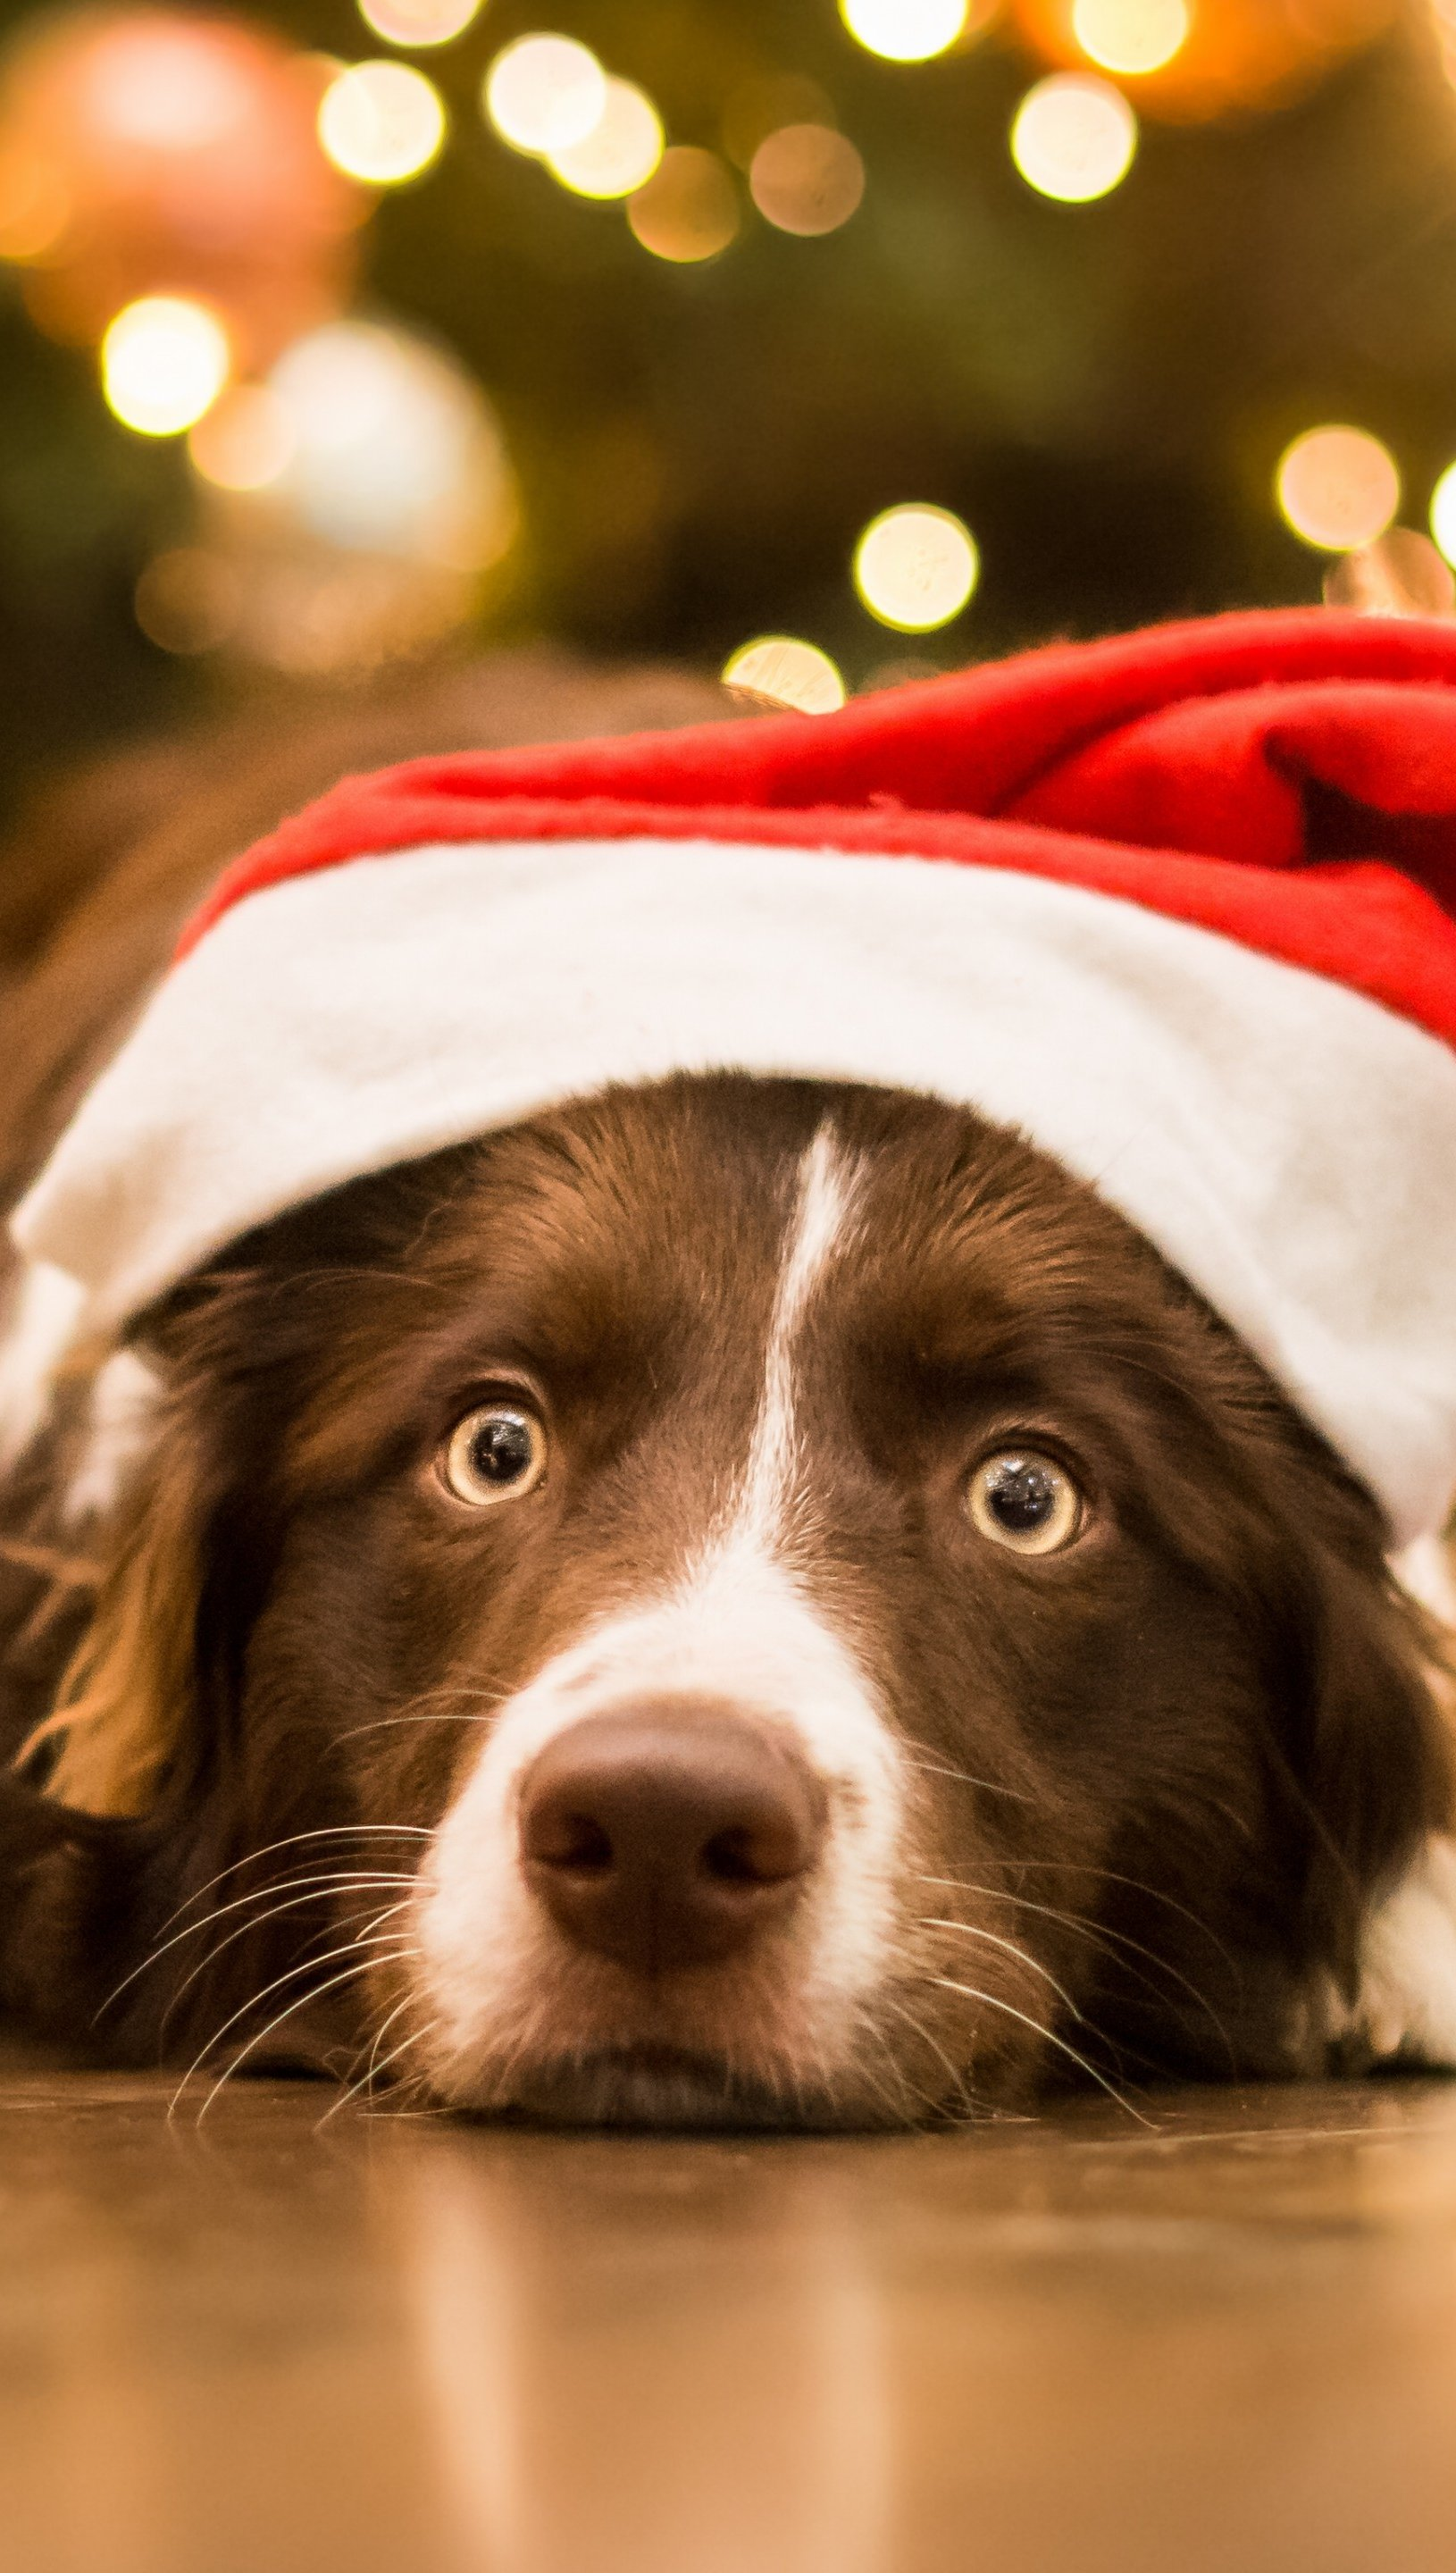 Wallpaper Dog with Santa Claus hat Vertical